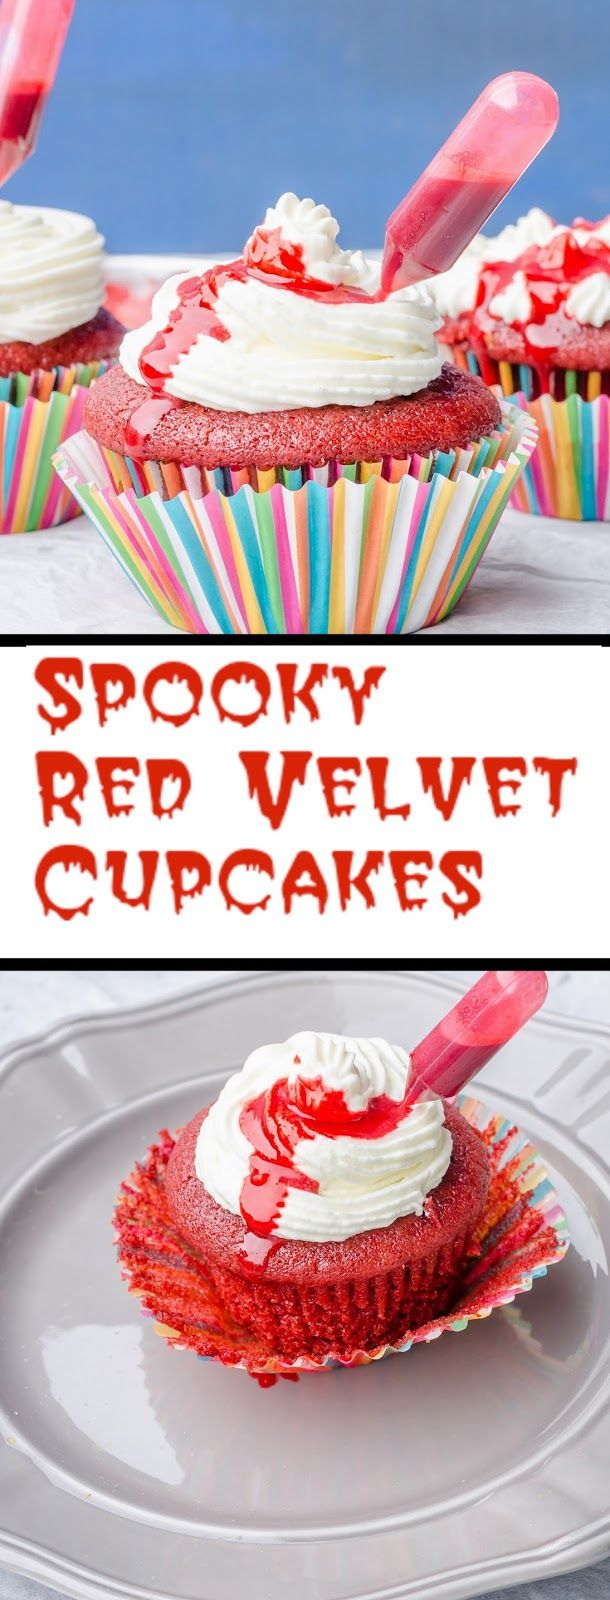 Herbivore Cucina: Spooky Red Velvet Cupcakes....Make Halloween spooky with eggless Red Velvet Cupcakes. Topped with vanilla cream and fake edible blood, these are super easy to make. #cupcake #egglessbaking #fakeBlood #halloween #holidayspecial #redvelvetcake #redvelvetemulsion #spookycakes #DIYrecipes #redcakes